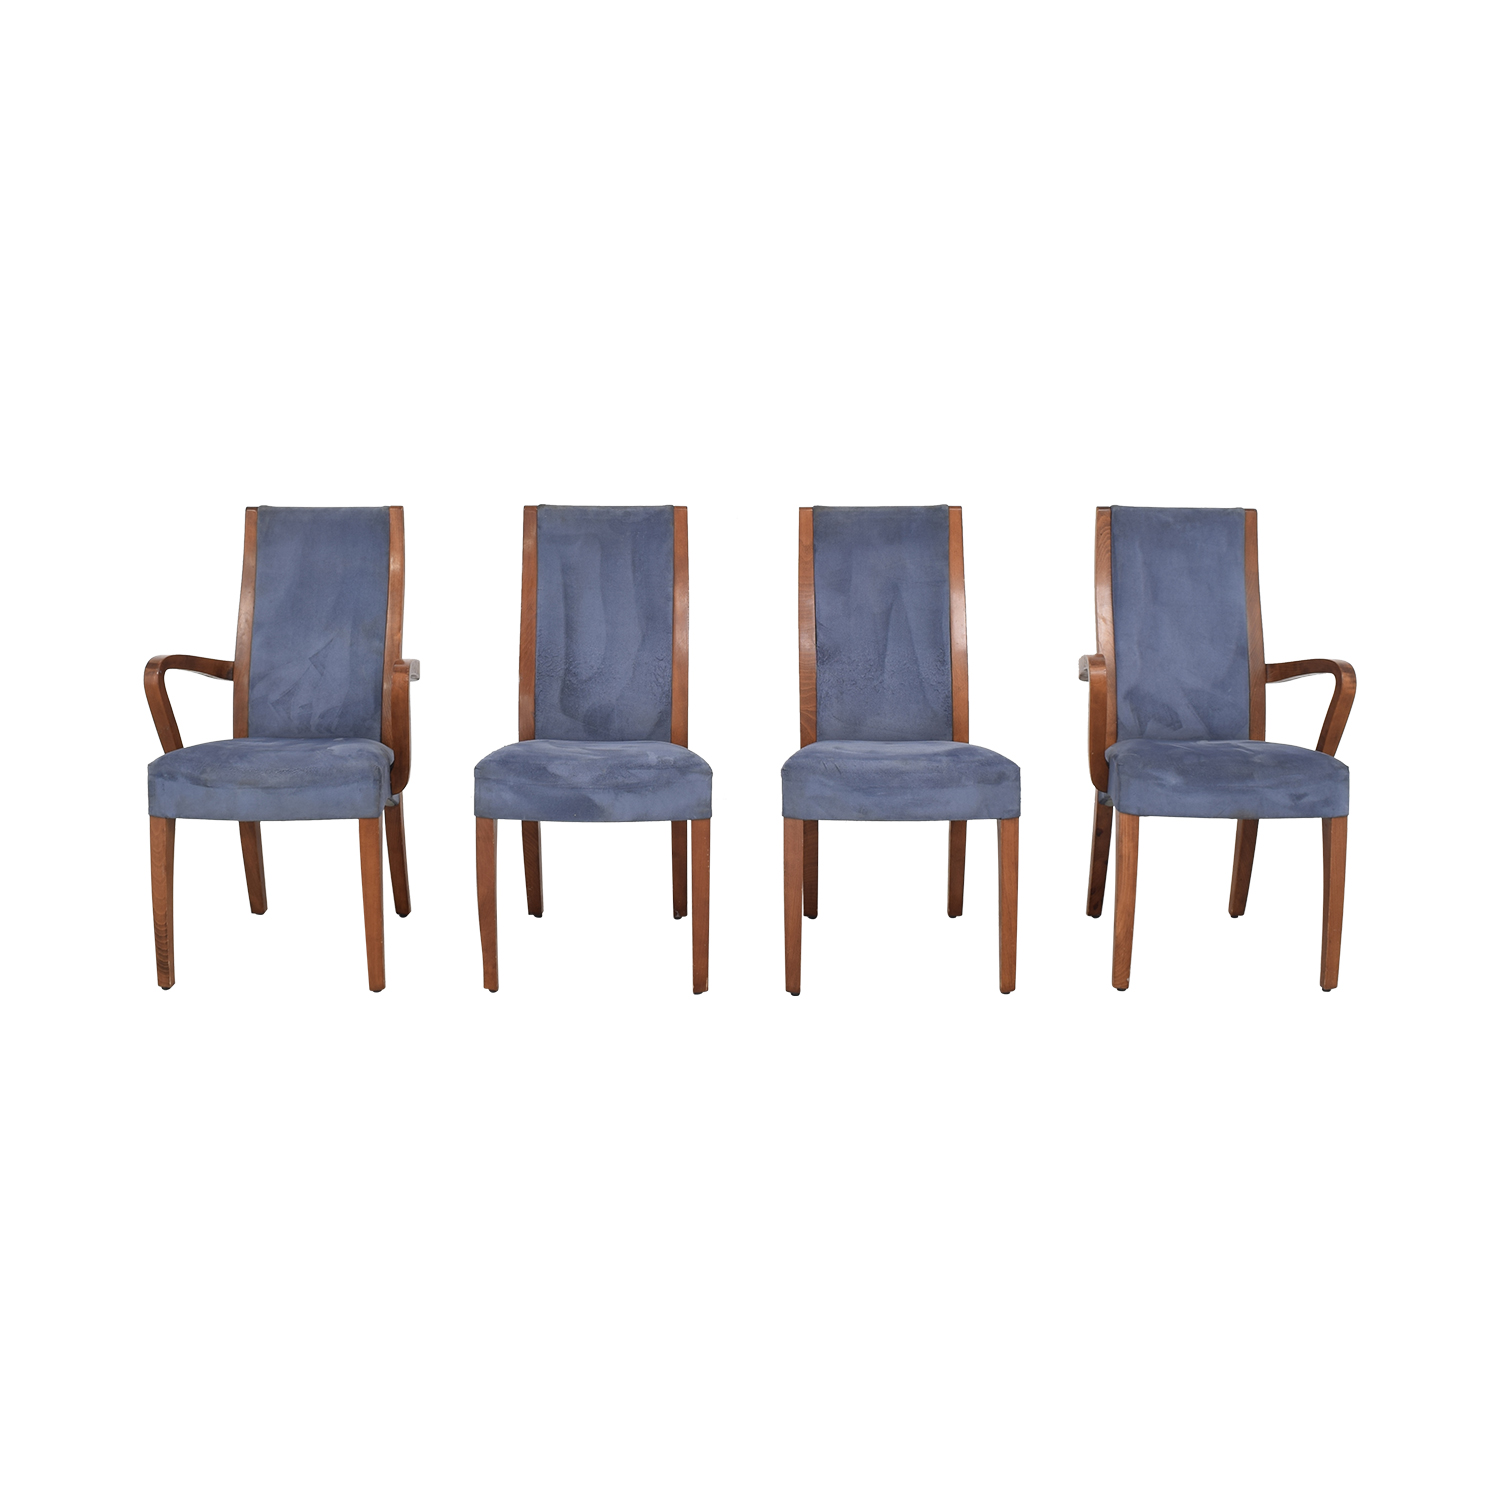 Andreu World Andreu World Dining Chairs Dining Chairs